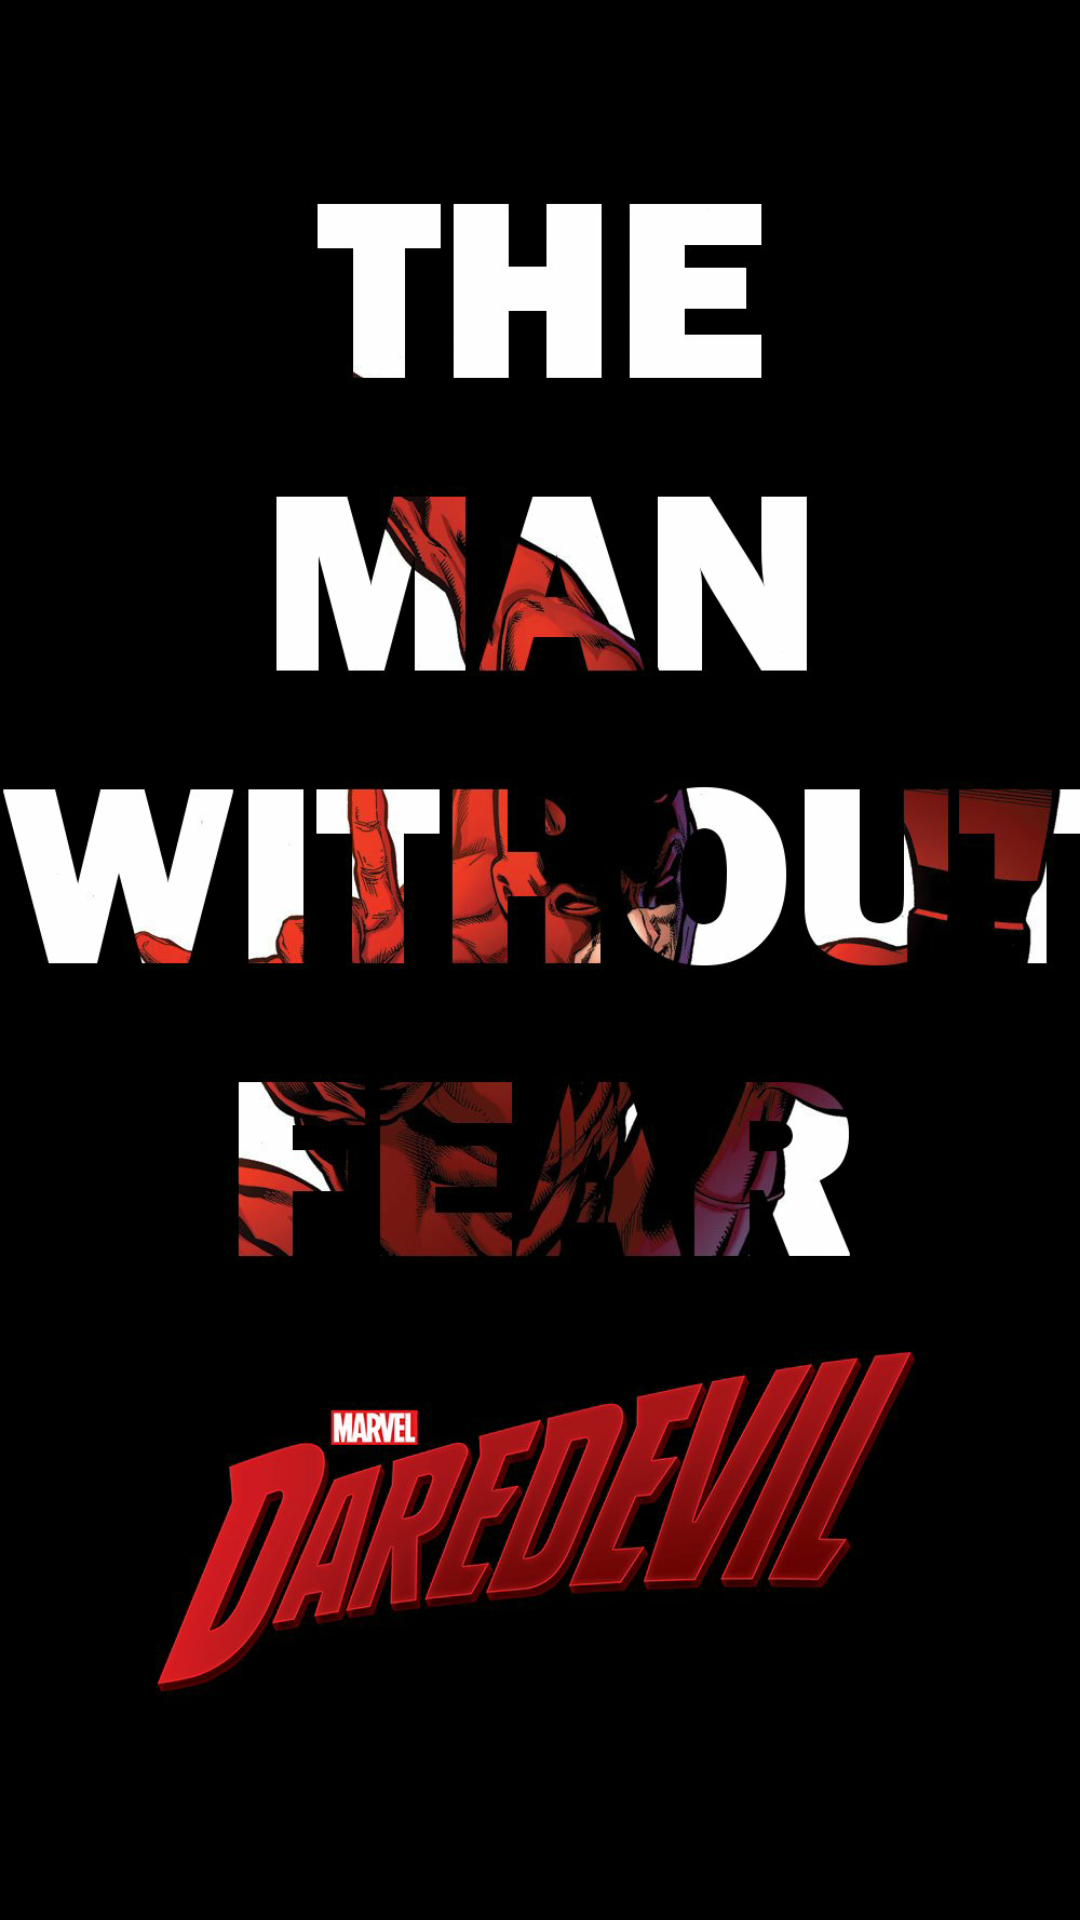 Similiar Daredevil Netflix Logo Phone Wallpaper Keywords